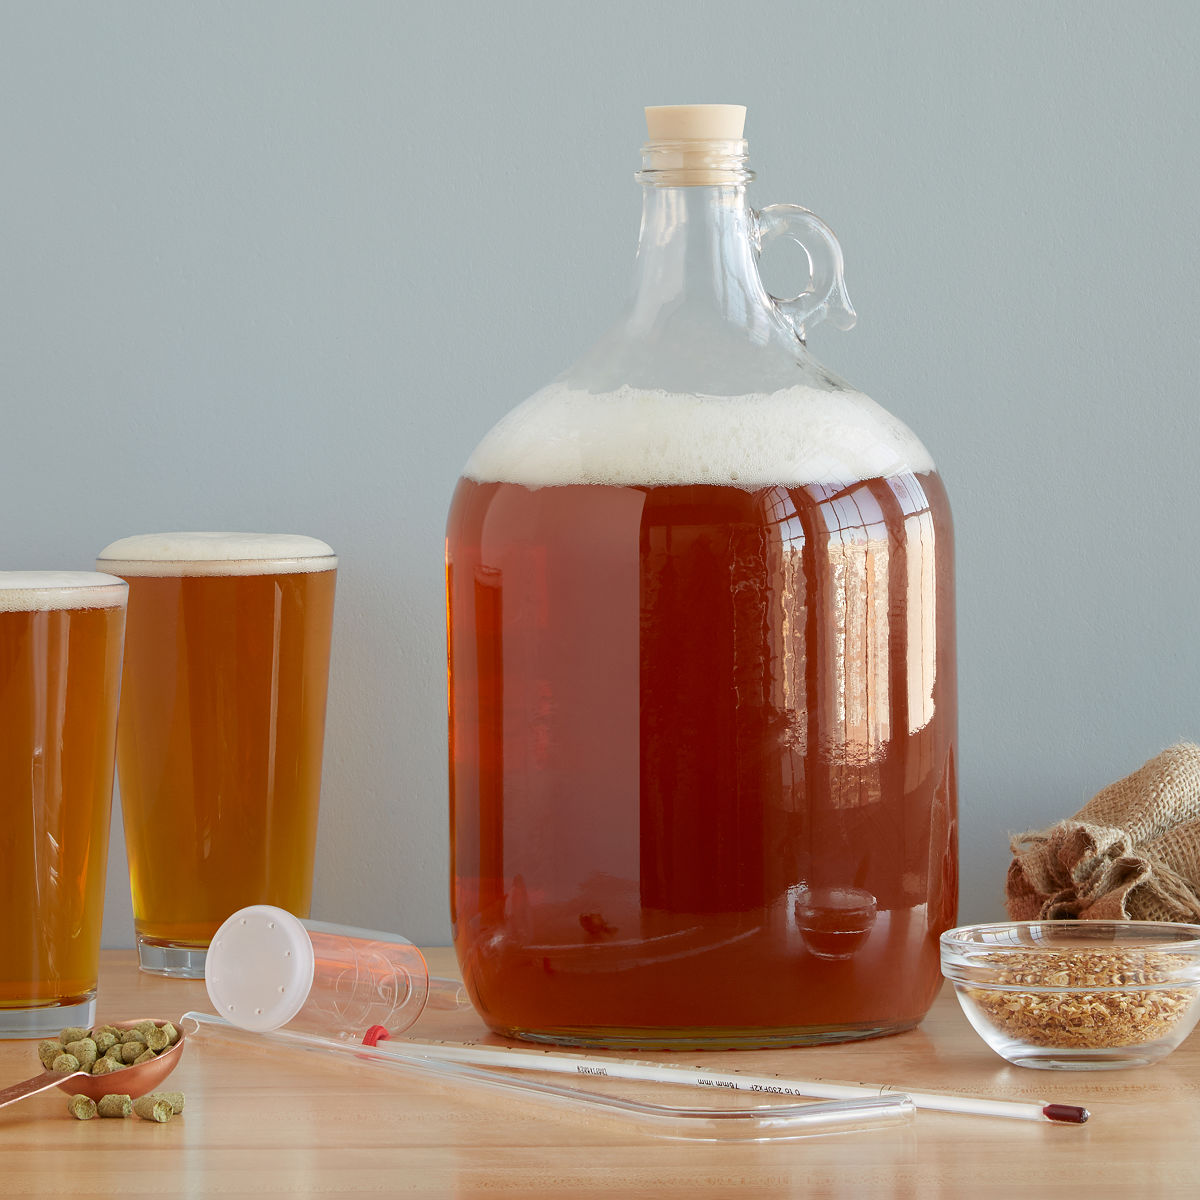 west coast style ipa beer brewing kit brew your own beer